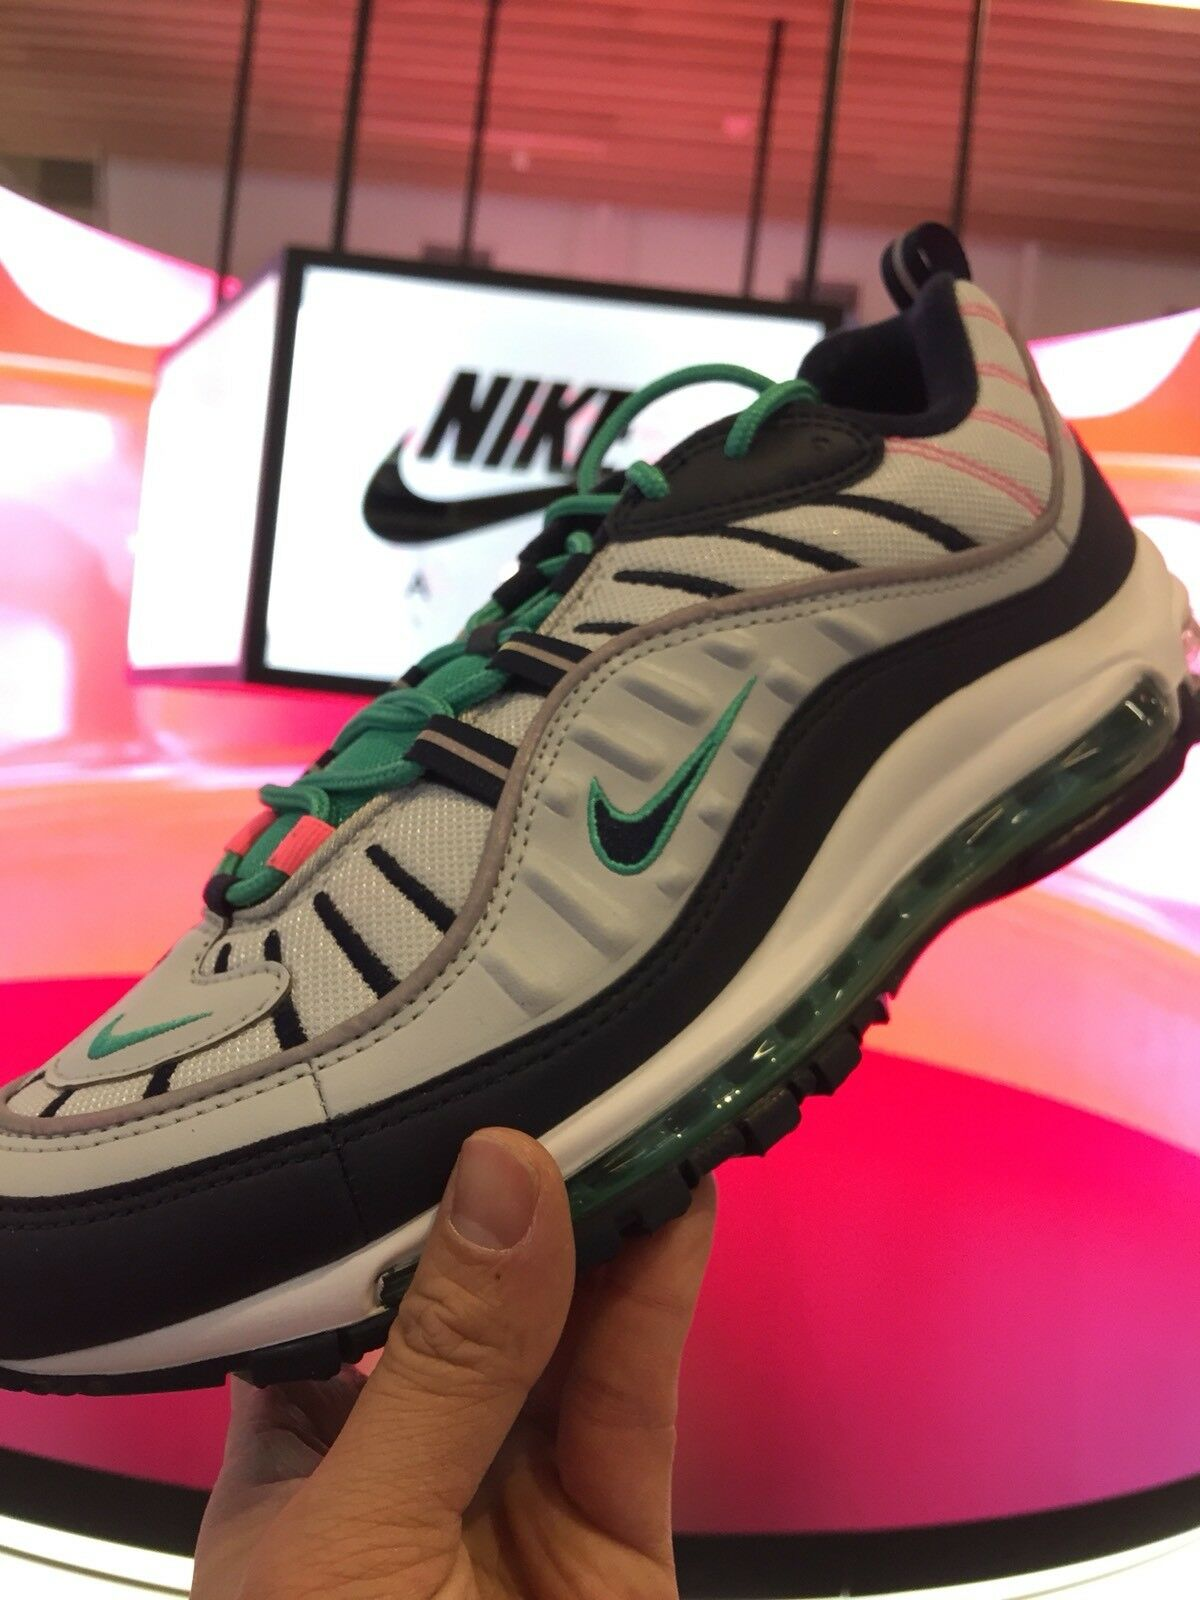 58c2100c15 Nike Air Max 98 South Beach Size 9.5 640744-005 nqkzvy57-new shoes ...